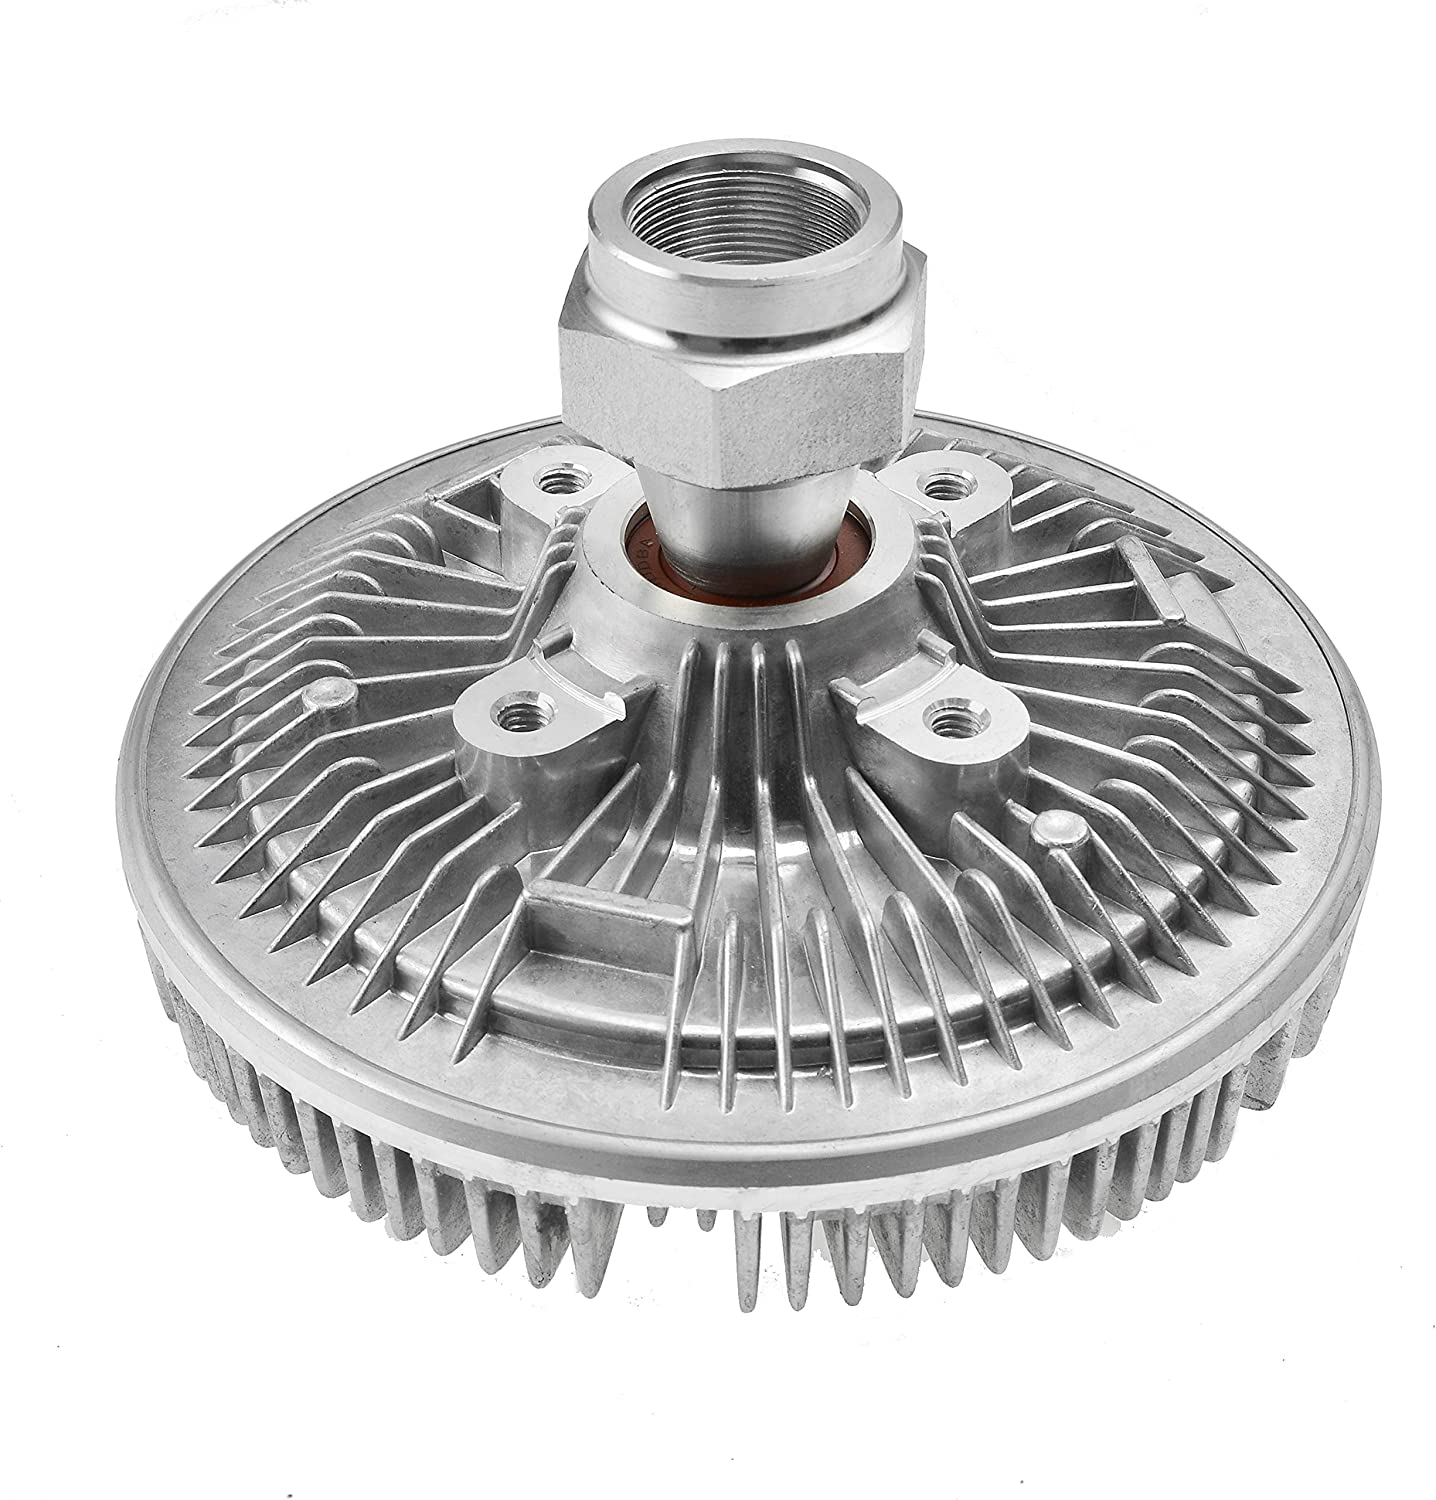 ADIGARAUTO 2837 Premium Engine Cooling Fan Clutch Compatible With 1999-2003 FORD F-250 F-350 F-450 F-550 2000-2003 FORD EXCURSION